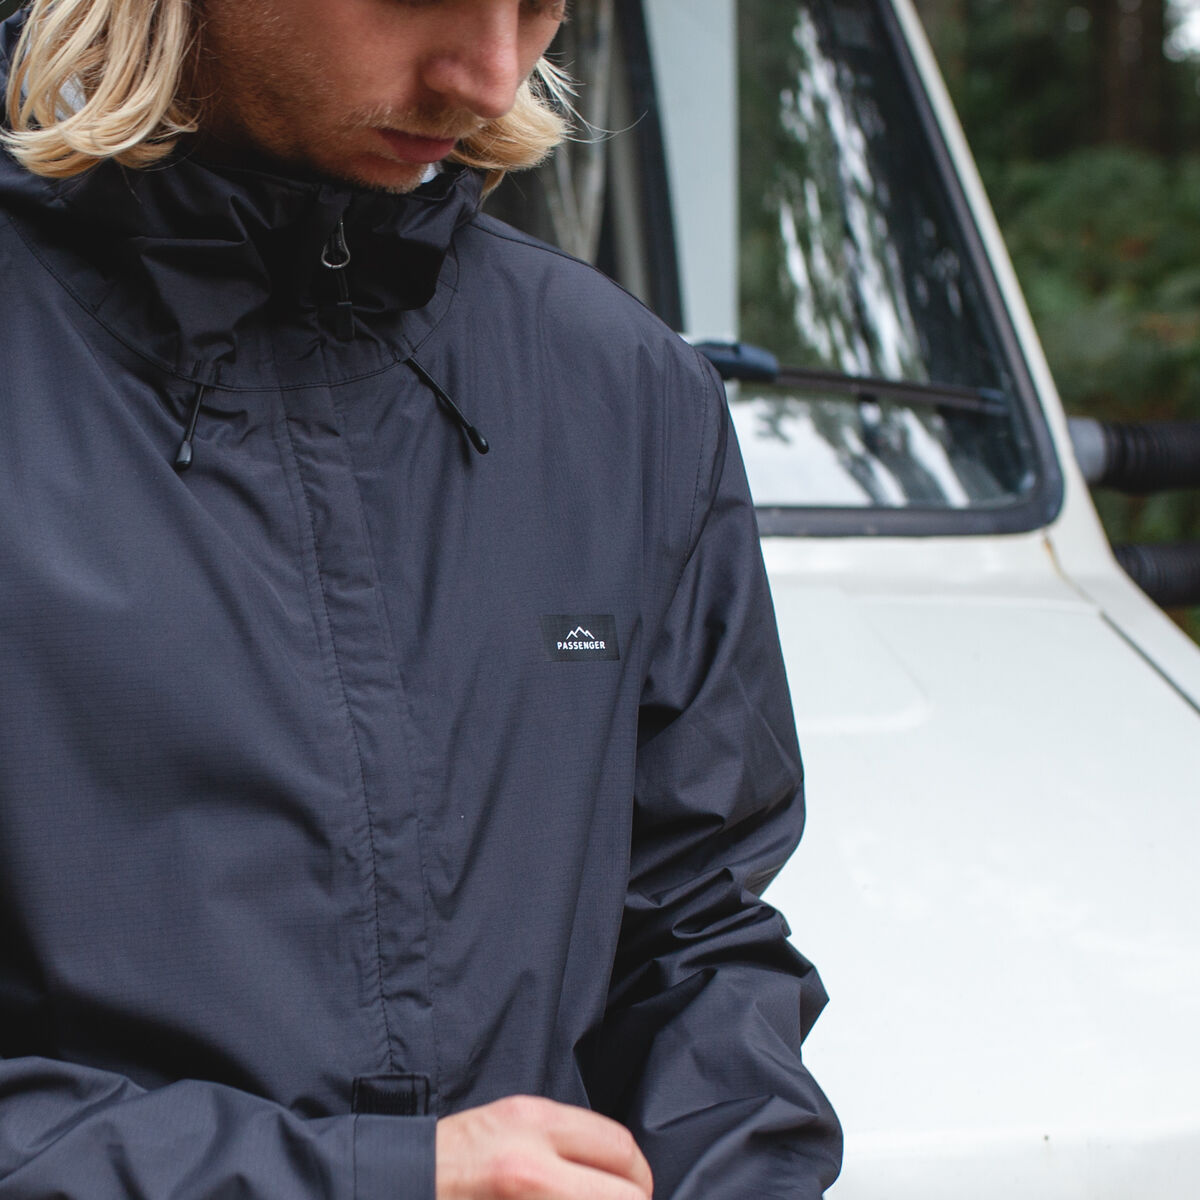 Norcal Waterproof Jacket - Black image 5